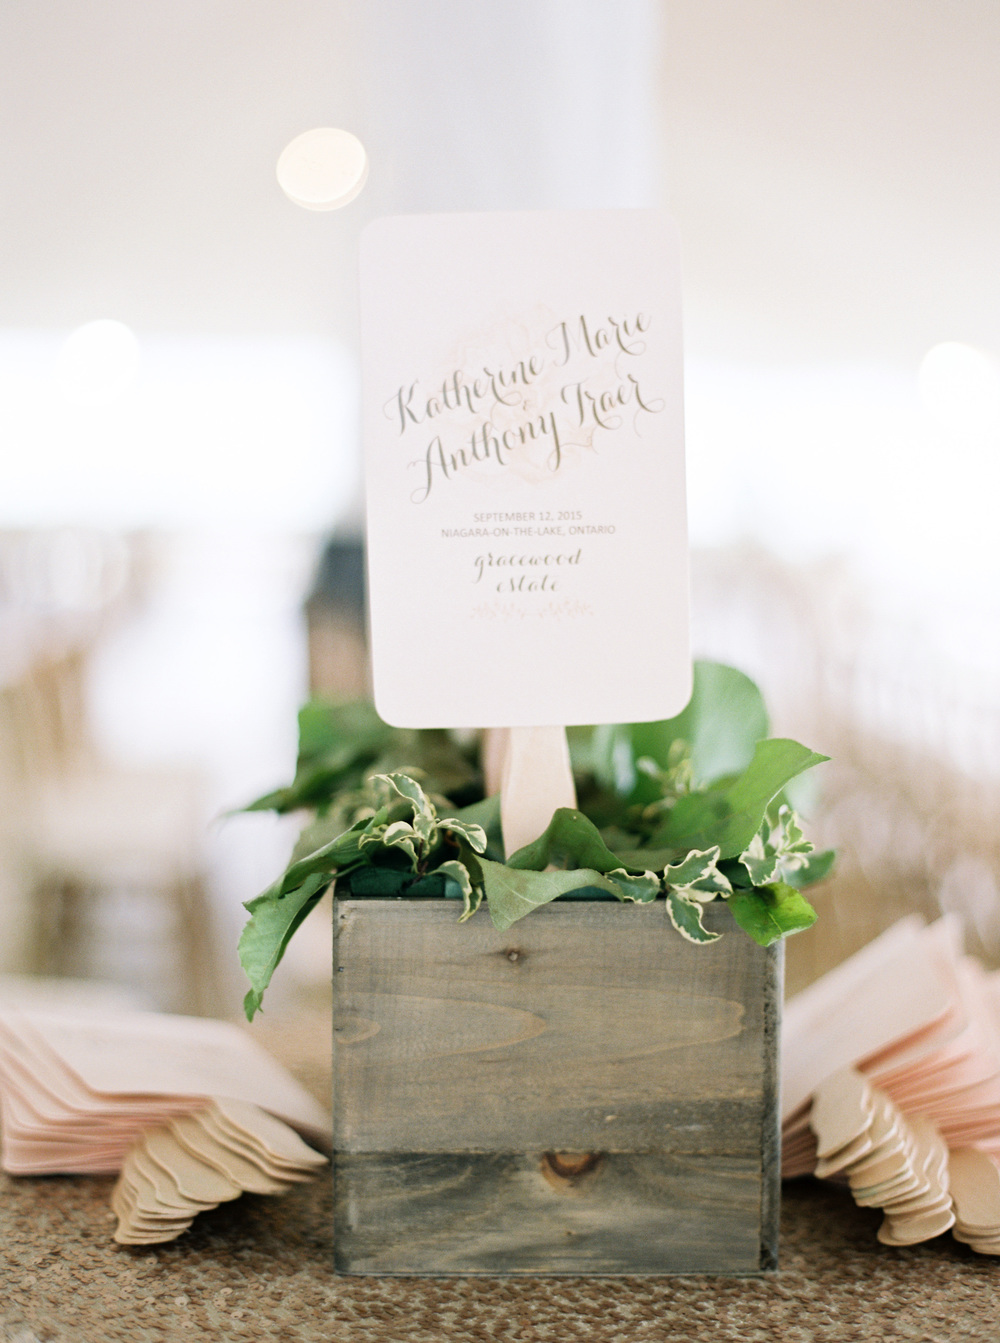 Kurtz-Orchards-Niagara-on-the-Lake-Wedding-photography-by-When-He-Found-Her-042.JPG